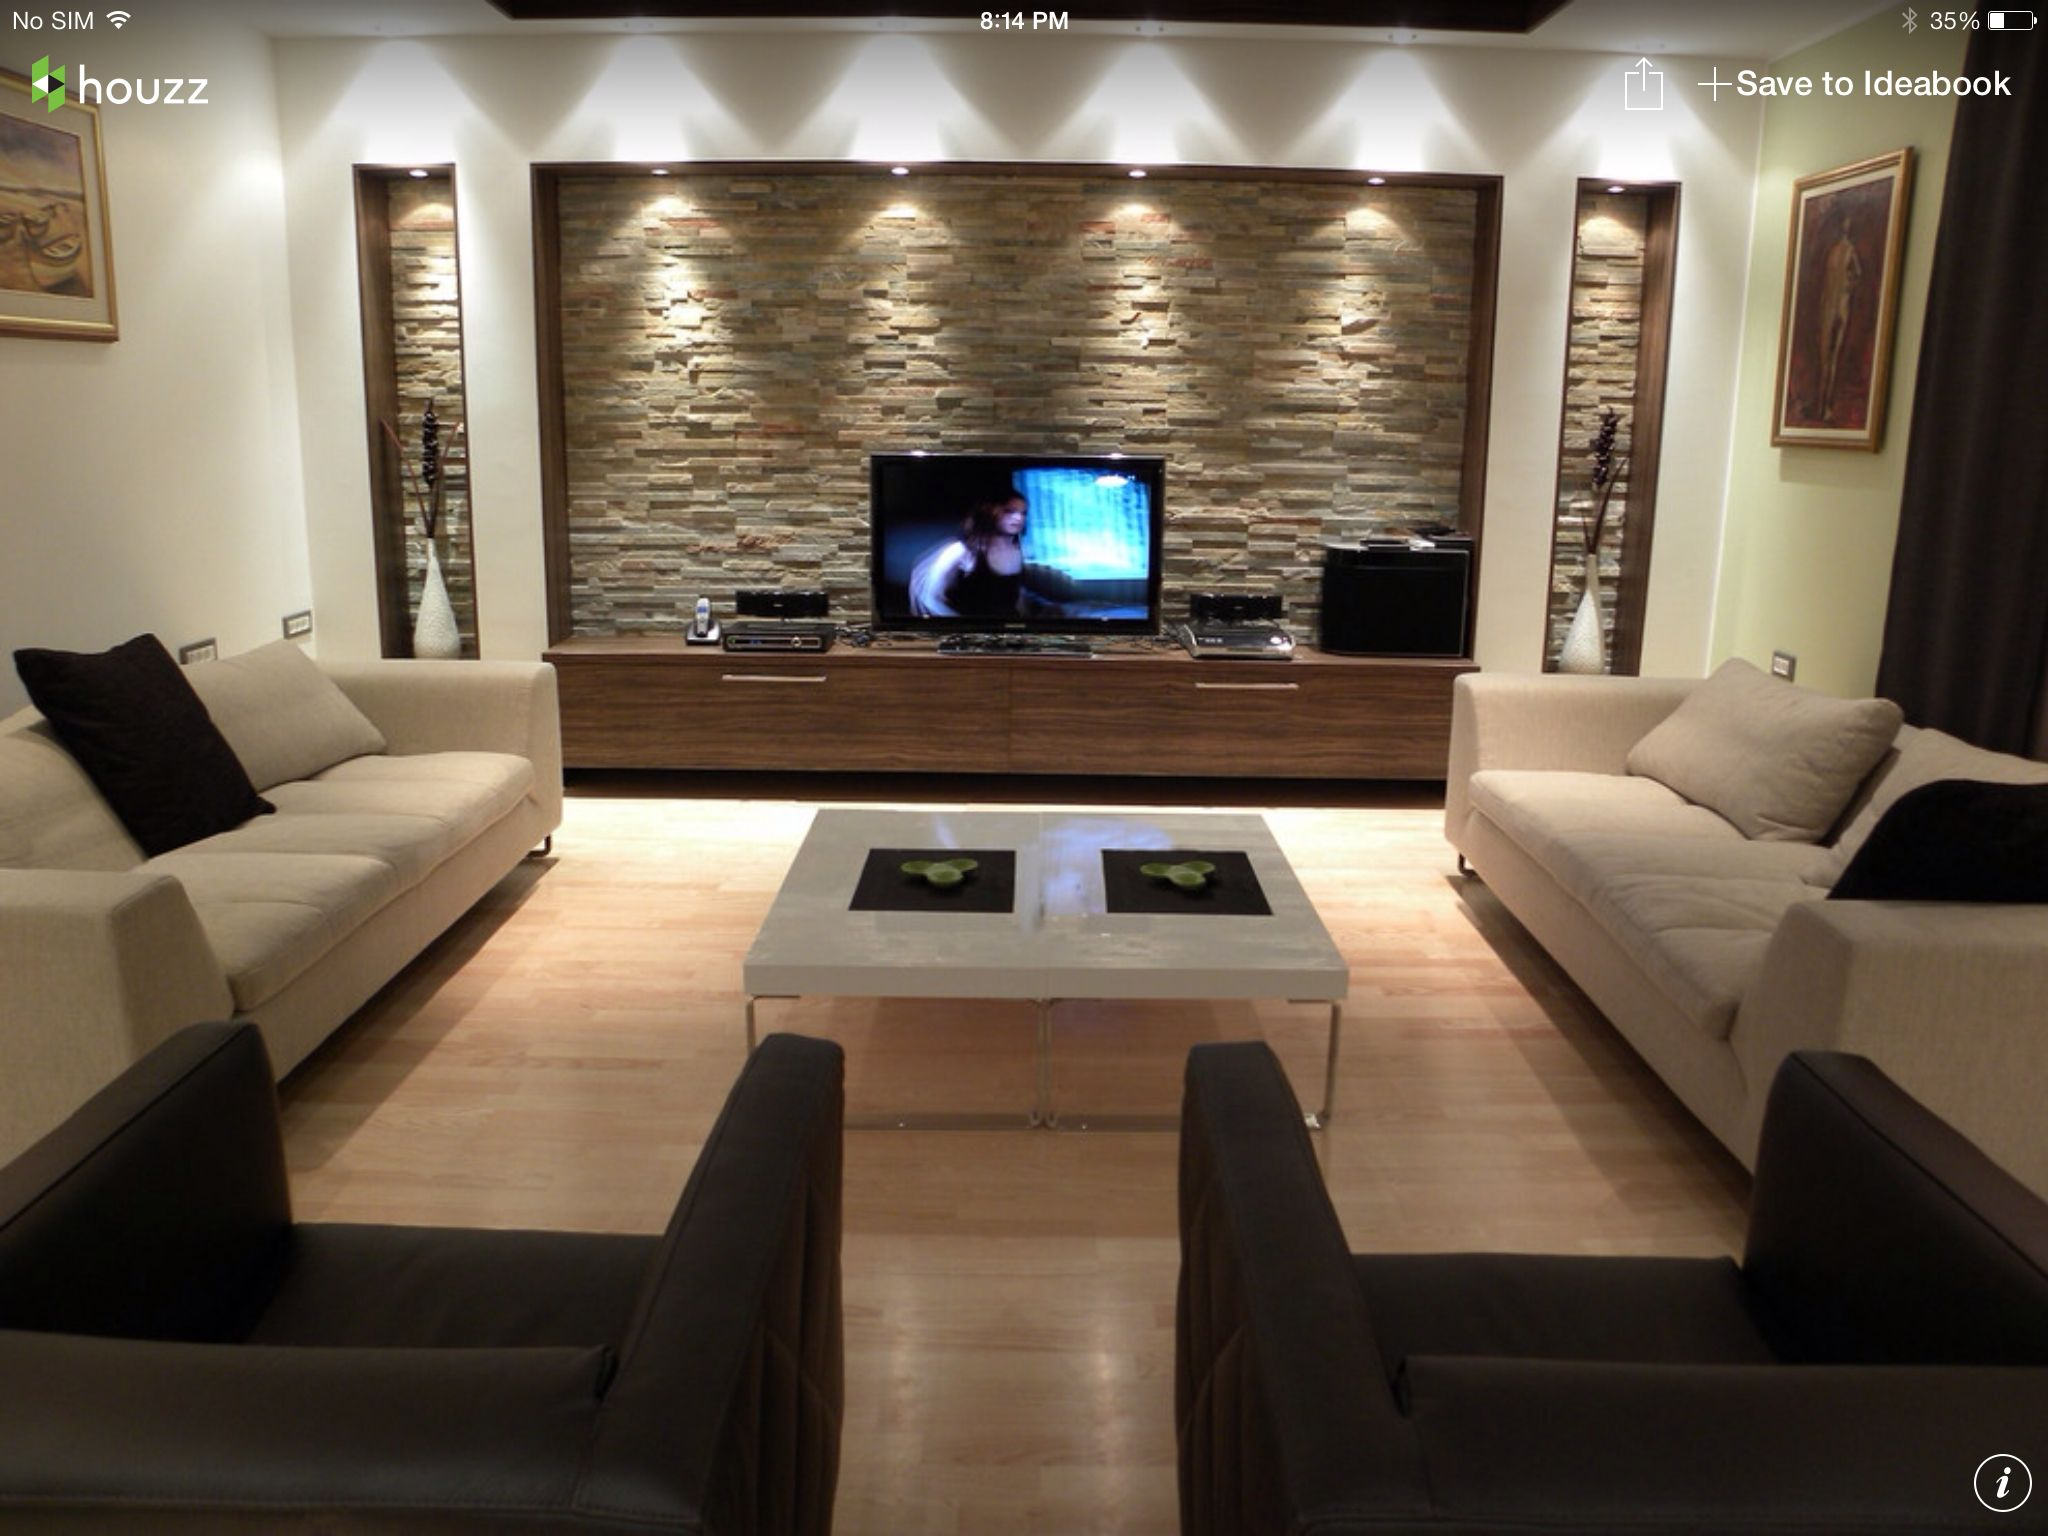 Modern living room wall decorations - Modern Stairs Fireplace And Designer Table